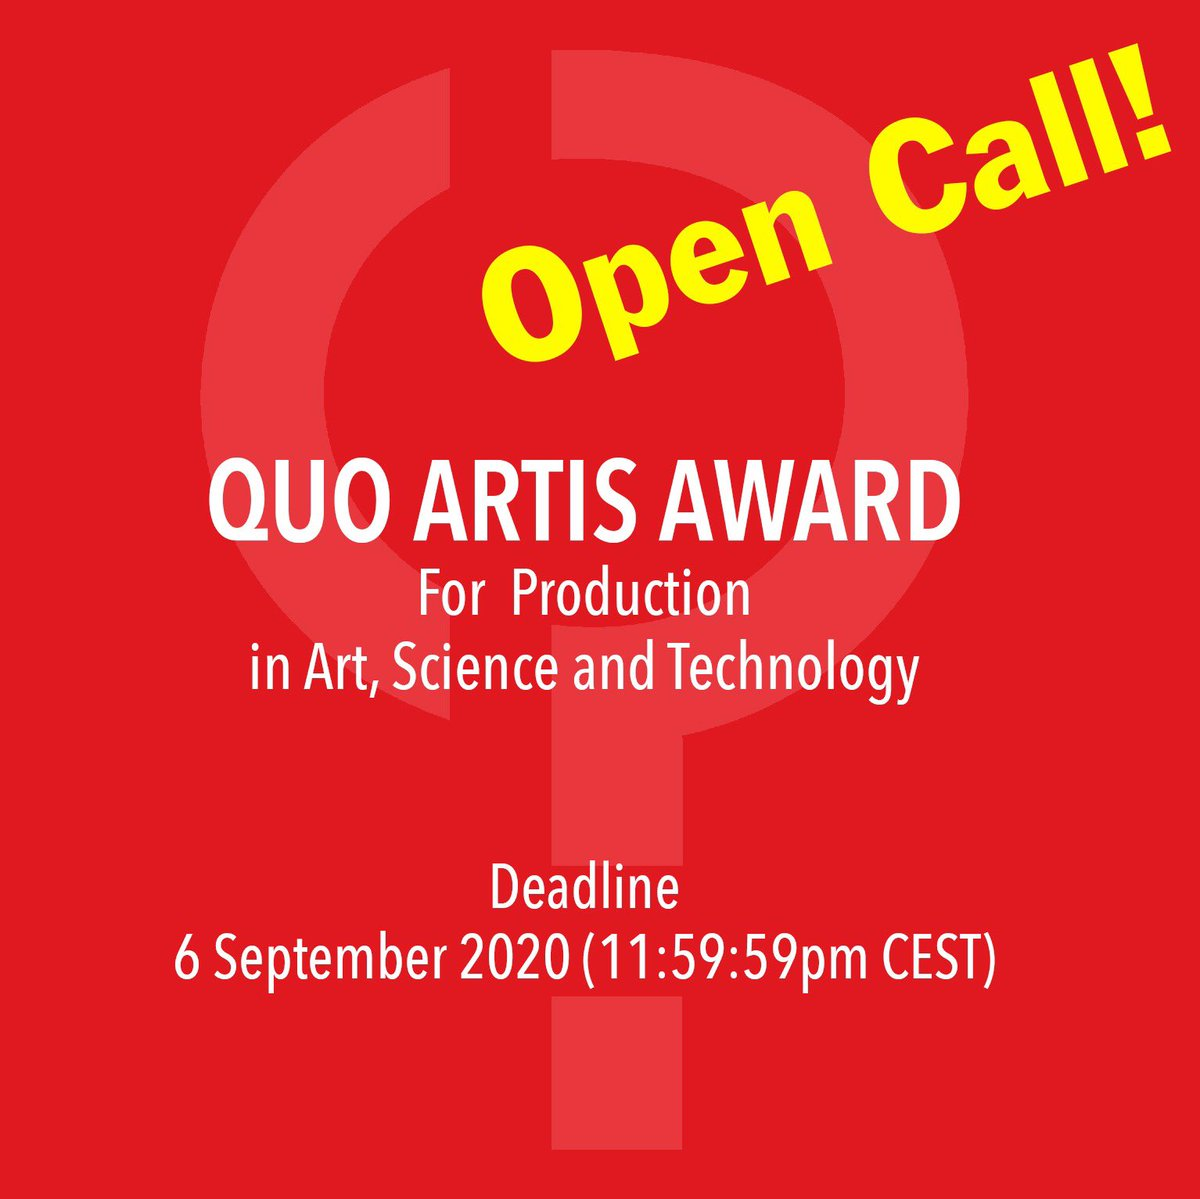 To mark its fifth anniversary, the Quo Artis foundation is announcing the first outing of its award to the research, development and production of an artistic project. Deadline: 6 September 2020 More Information: https://t.co/ch3QC0tN5F https://t.co/1CF4NscqIT